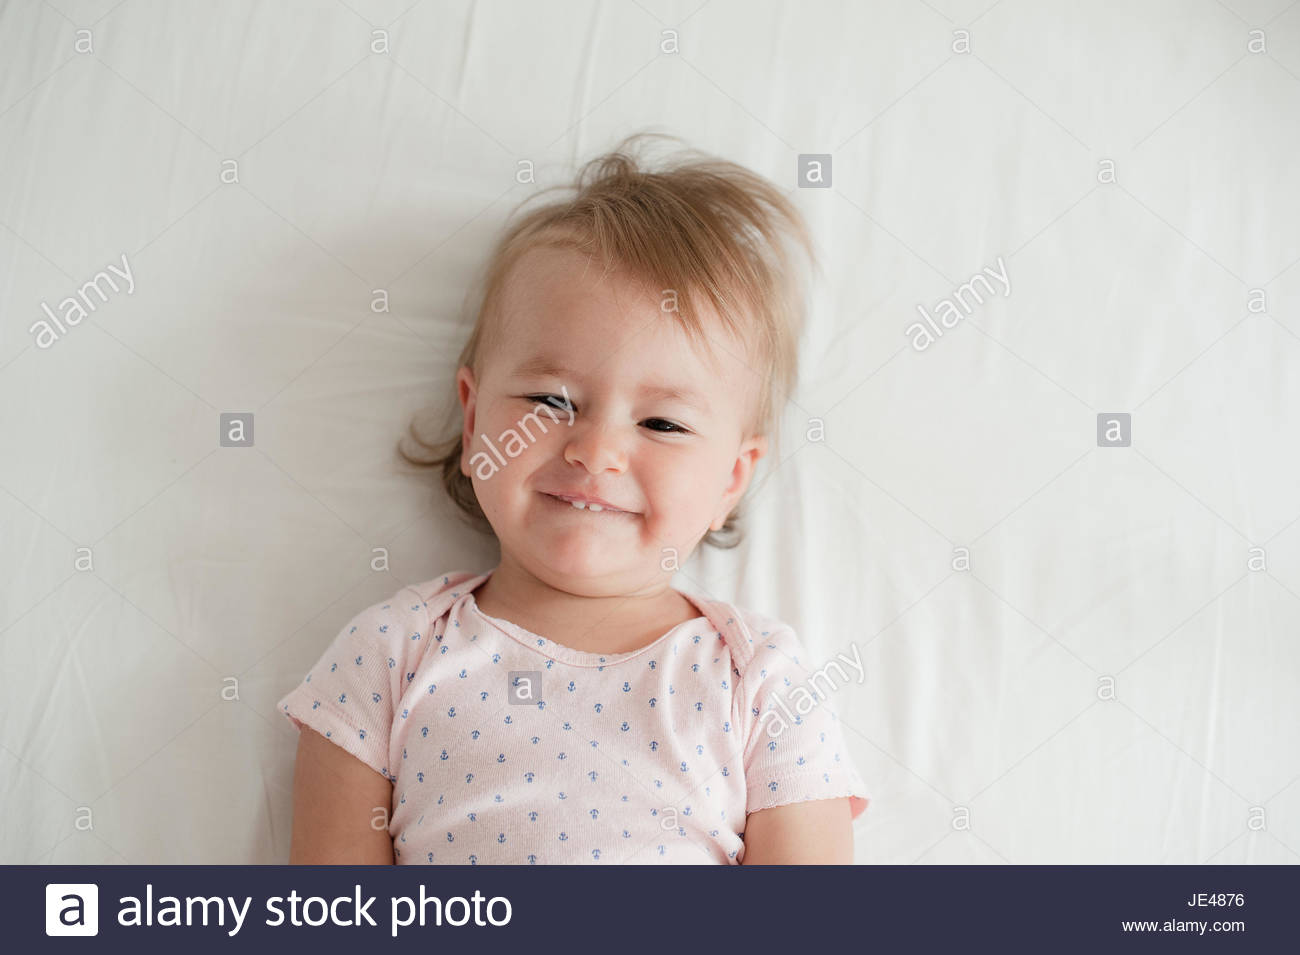 Friendly un an baby smiling Photo Stock